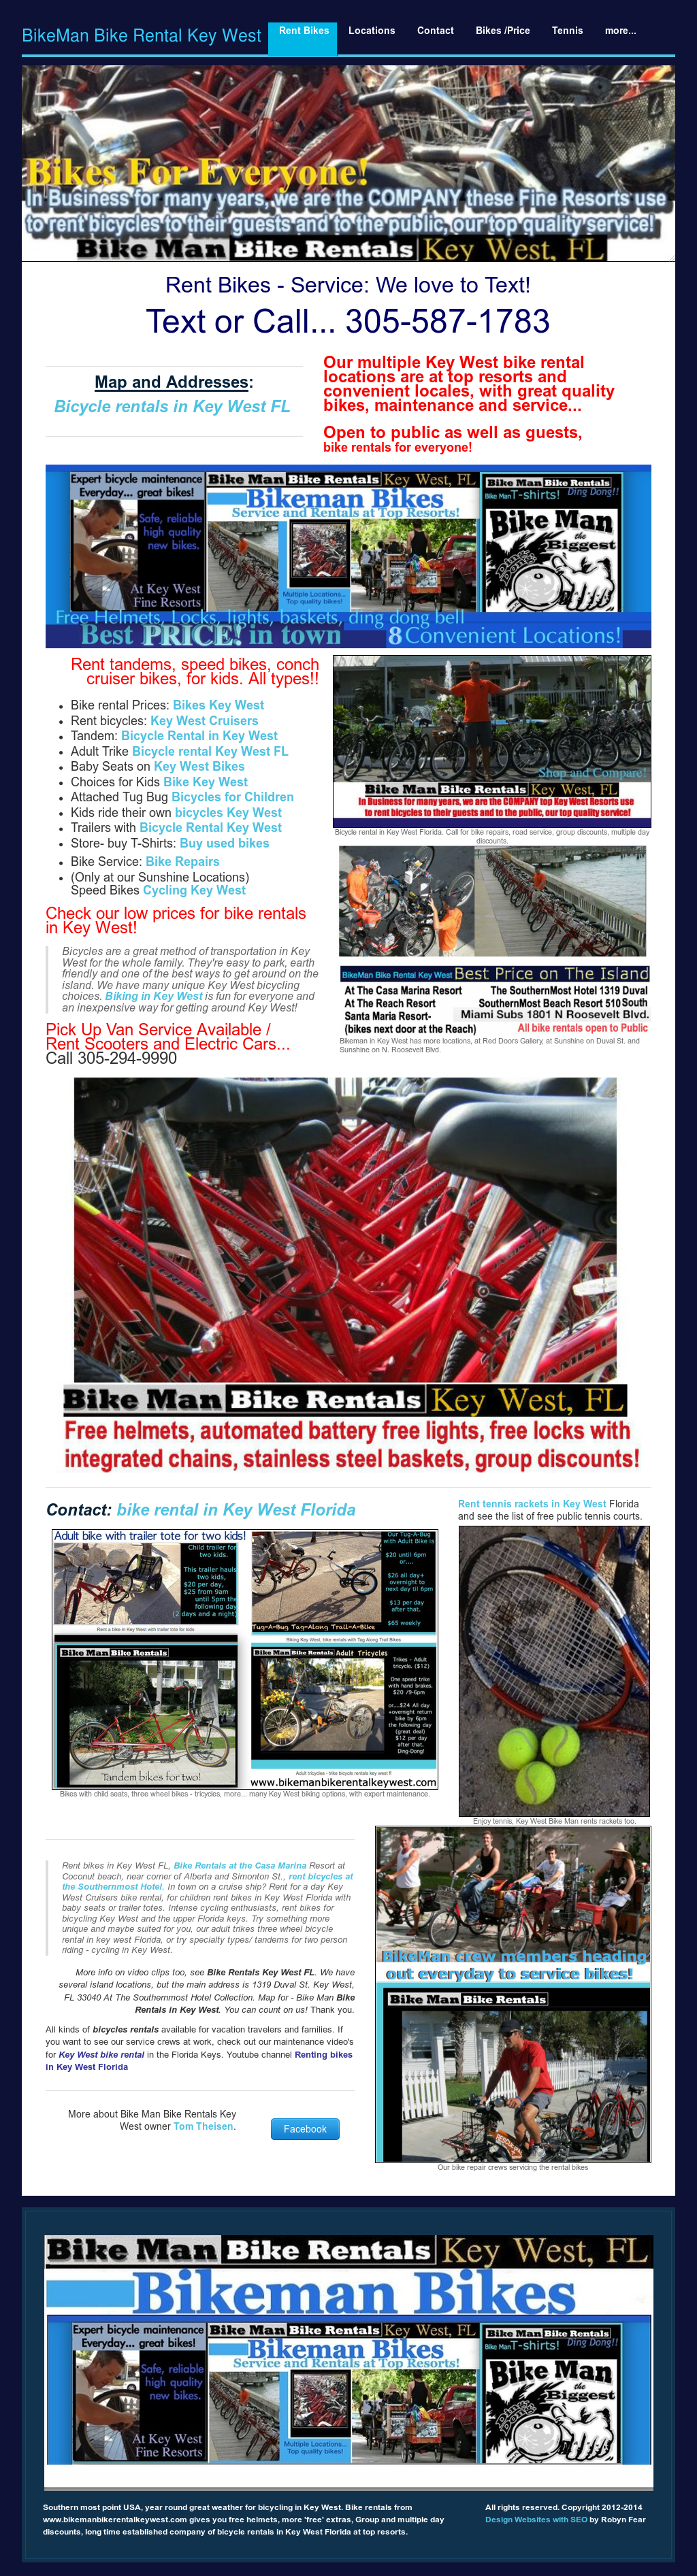 Bikeman Bikerentals Competitors, Revenue and Employees - Owler Company  Profile